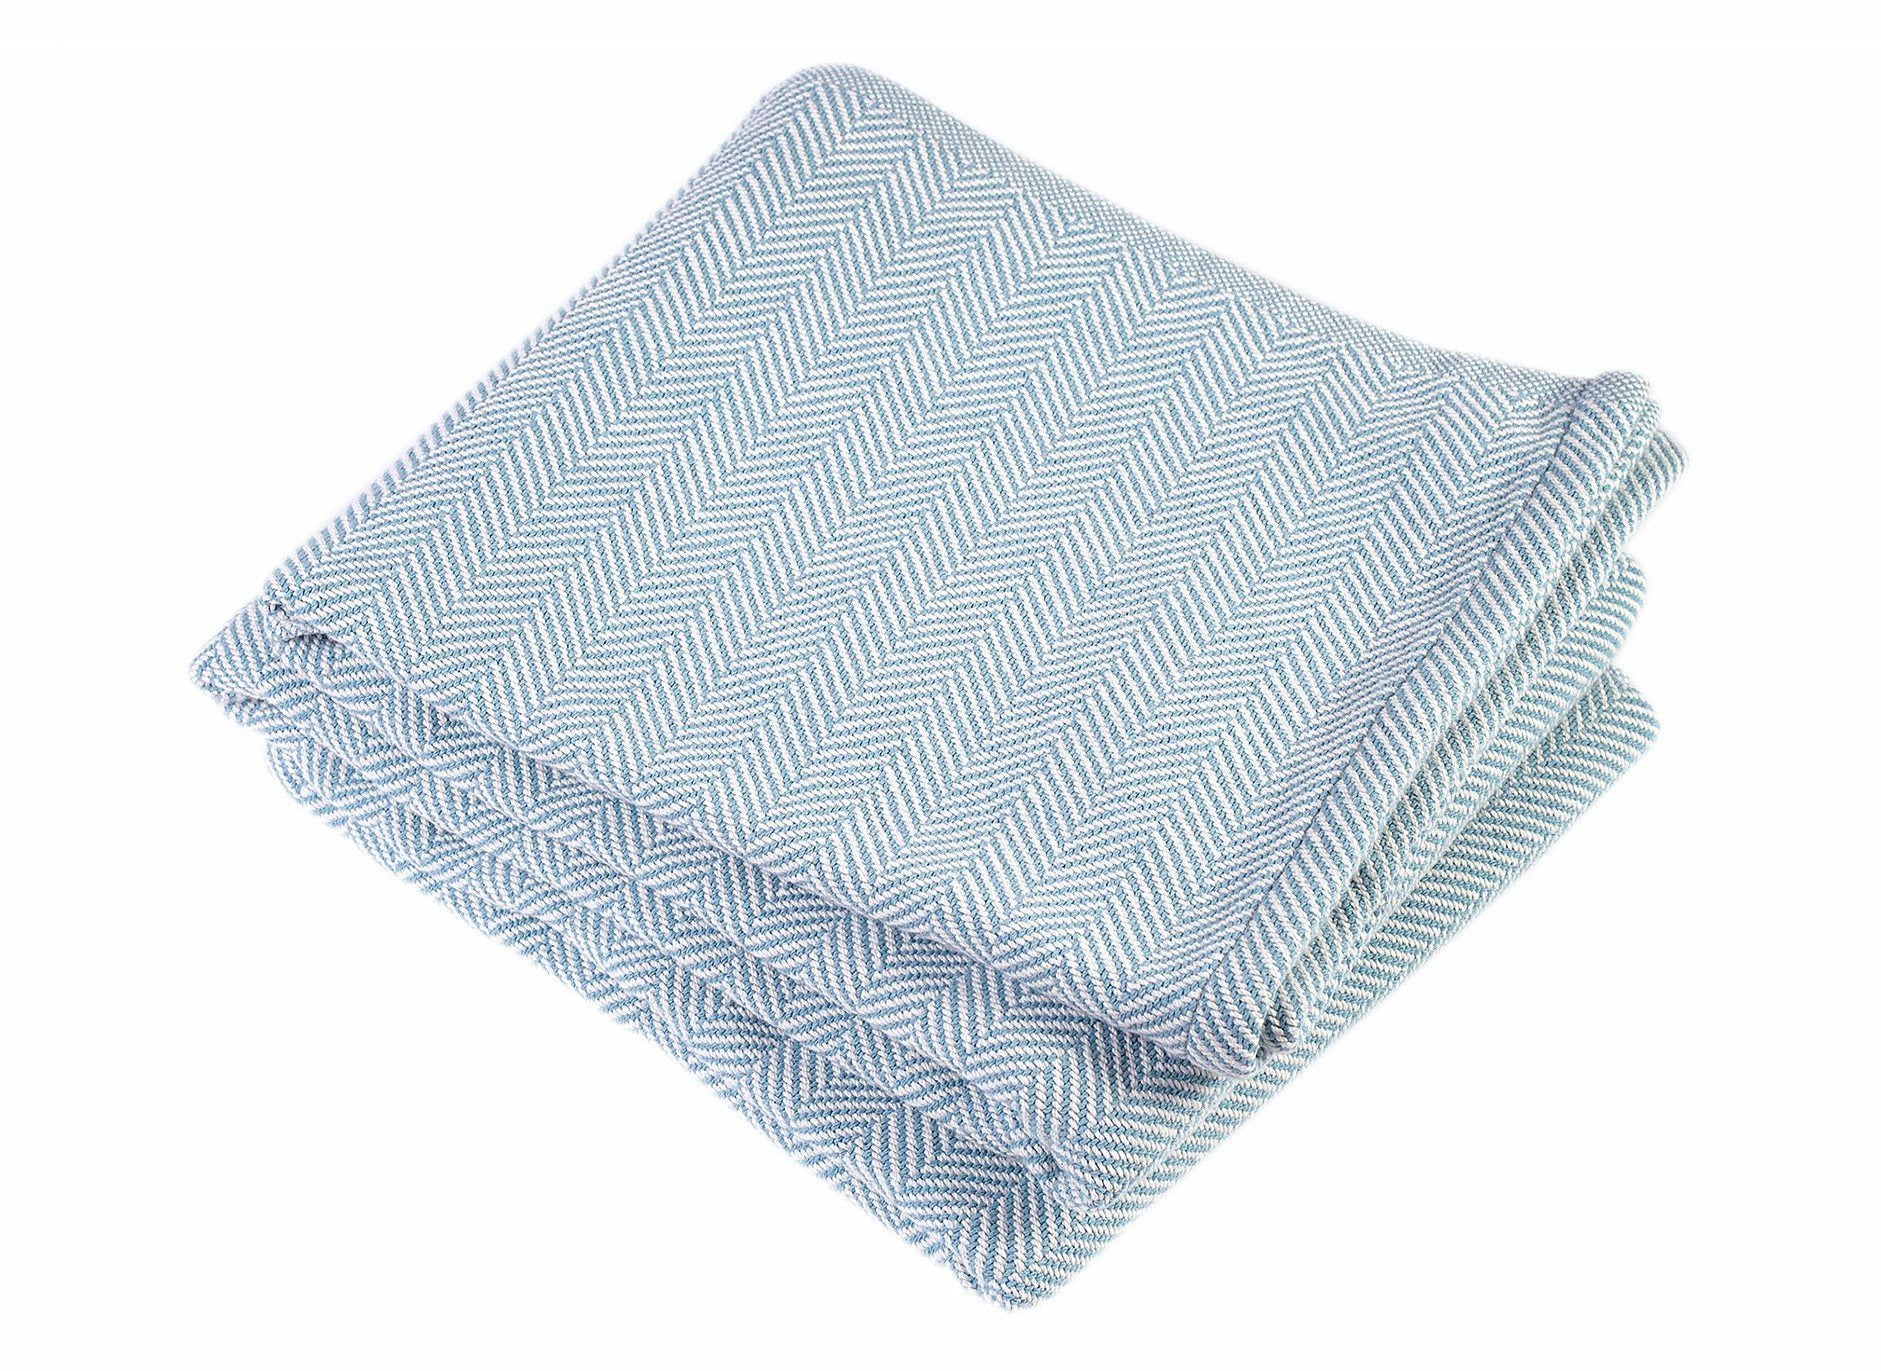 Matka Blue Penobscot Herringbone Cotton Blanket by Brahms Mount | Fig Linens